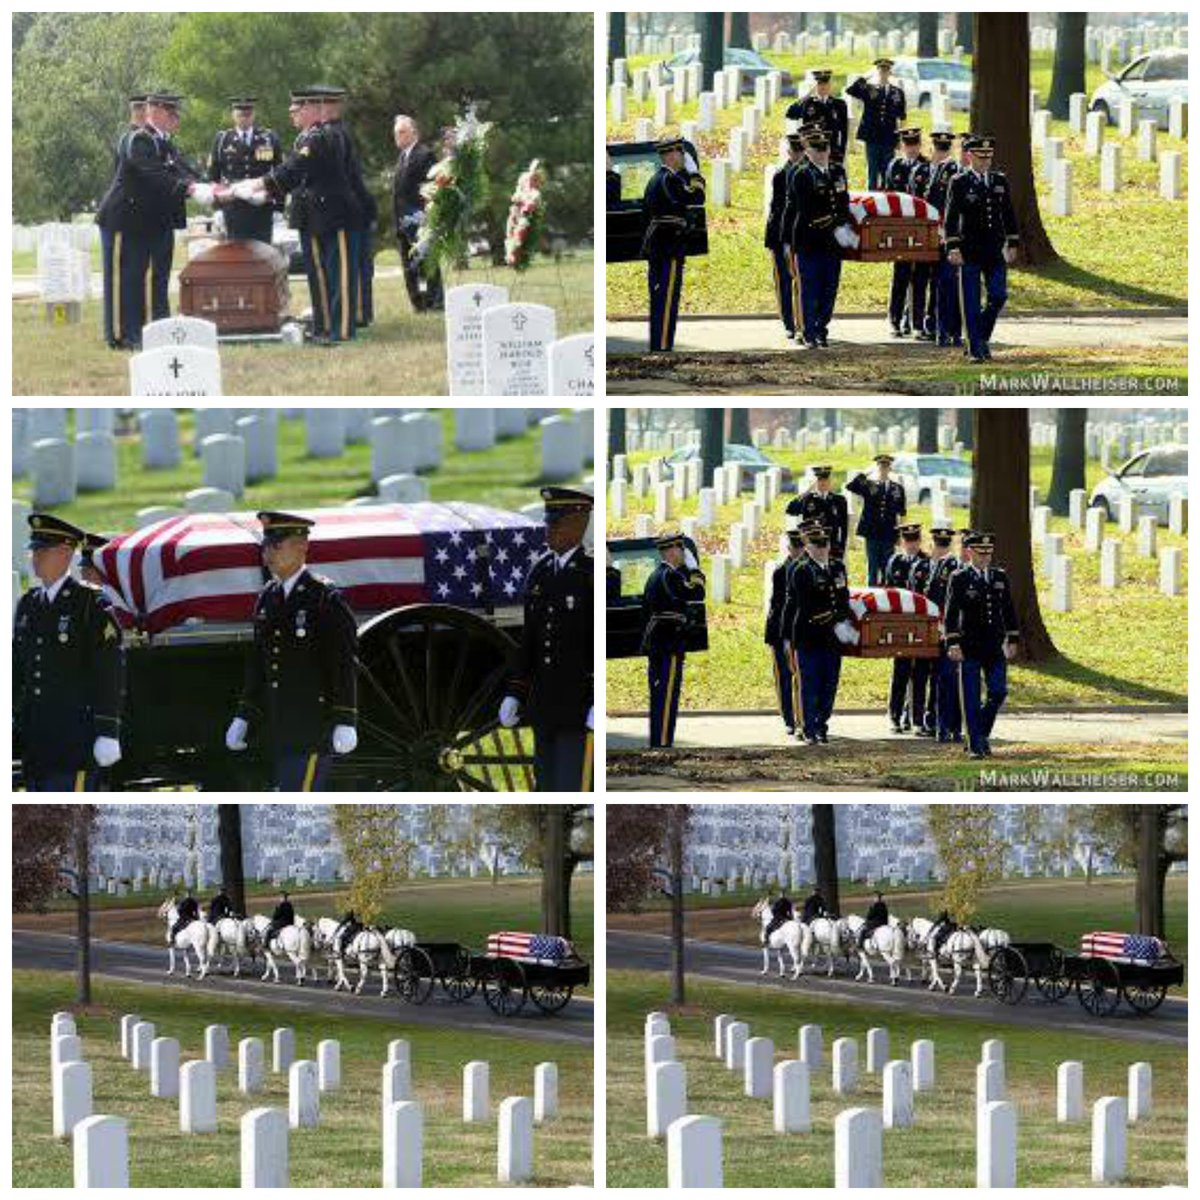 In memory of those who gave all.  With deep and lasting gratitude. http://t.co/OvXDLdnM2y